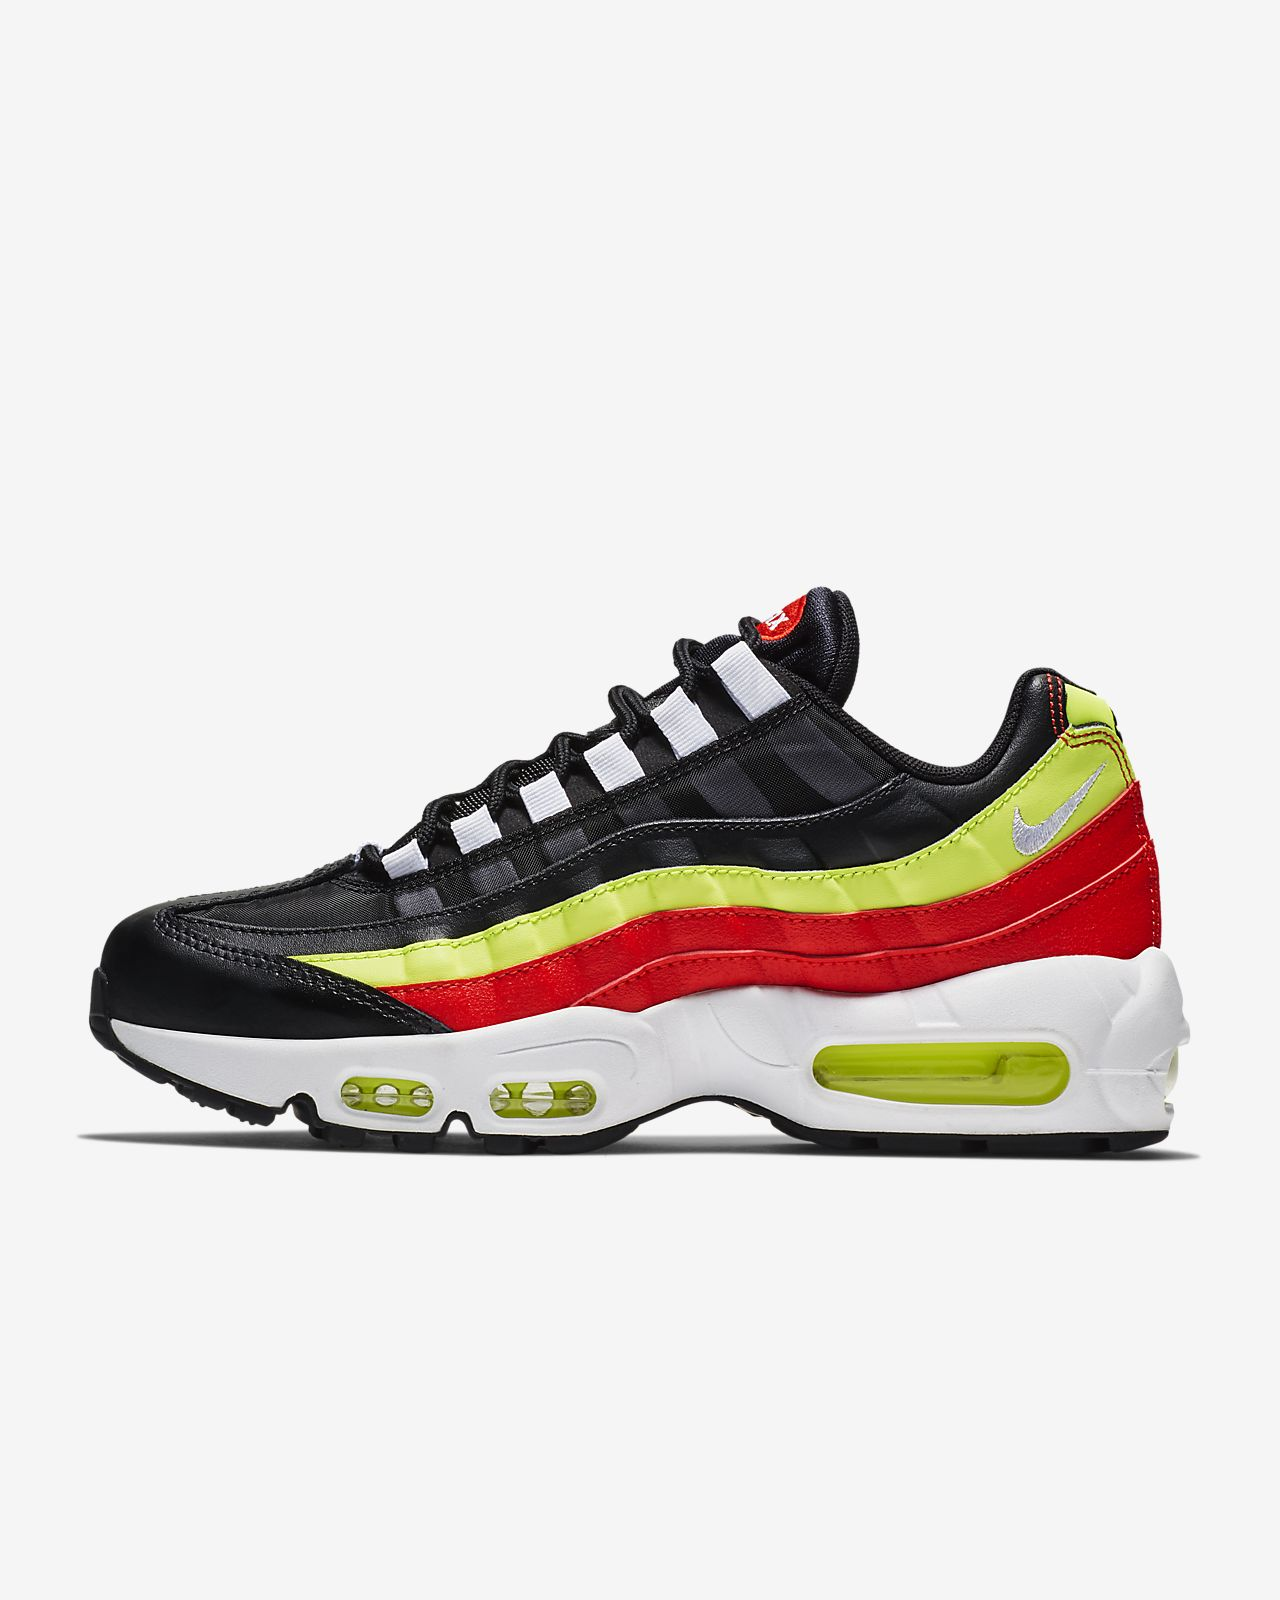 52733c341b35 Nike Air Max 95 Women s Shoe. Nike.com